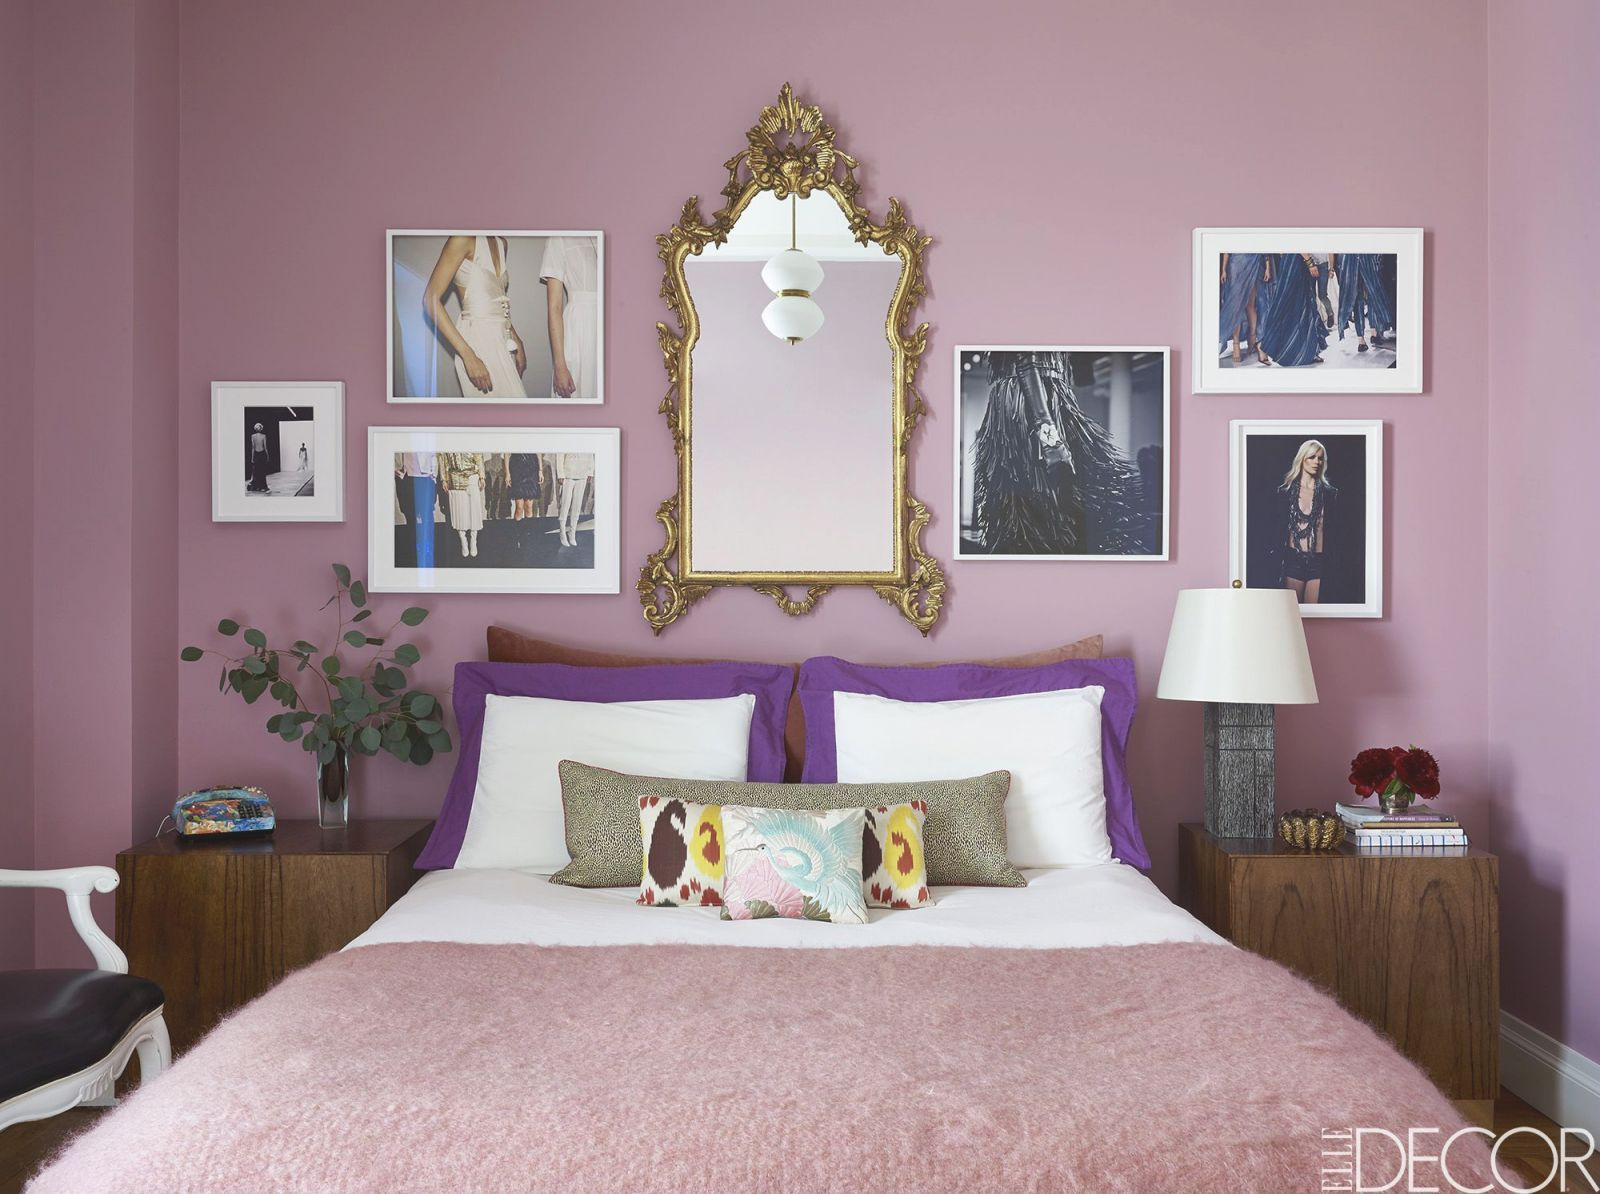 55 Small Bedroom Design Ideas – Decorating Tips For Small intended for Beautiful Decorative Ideas For Bedroom